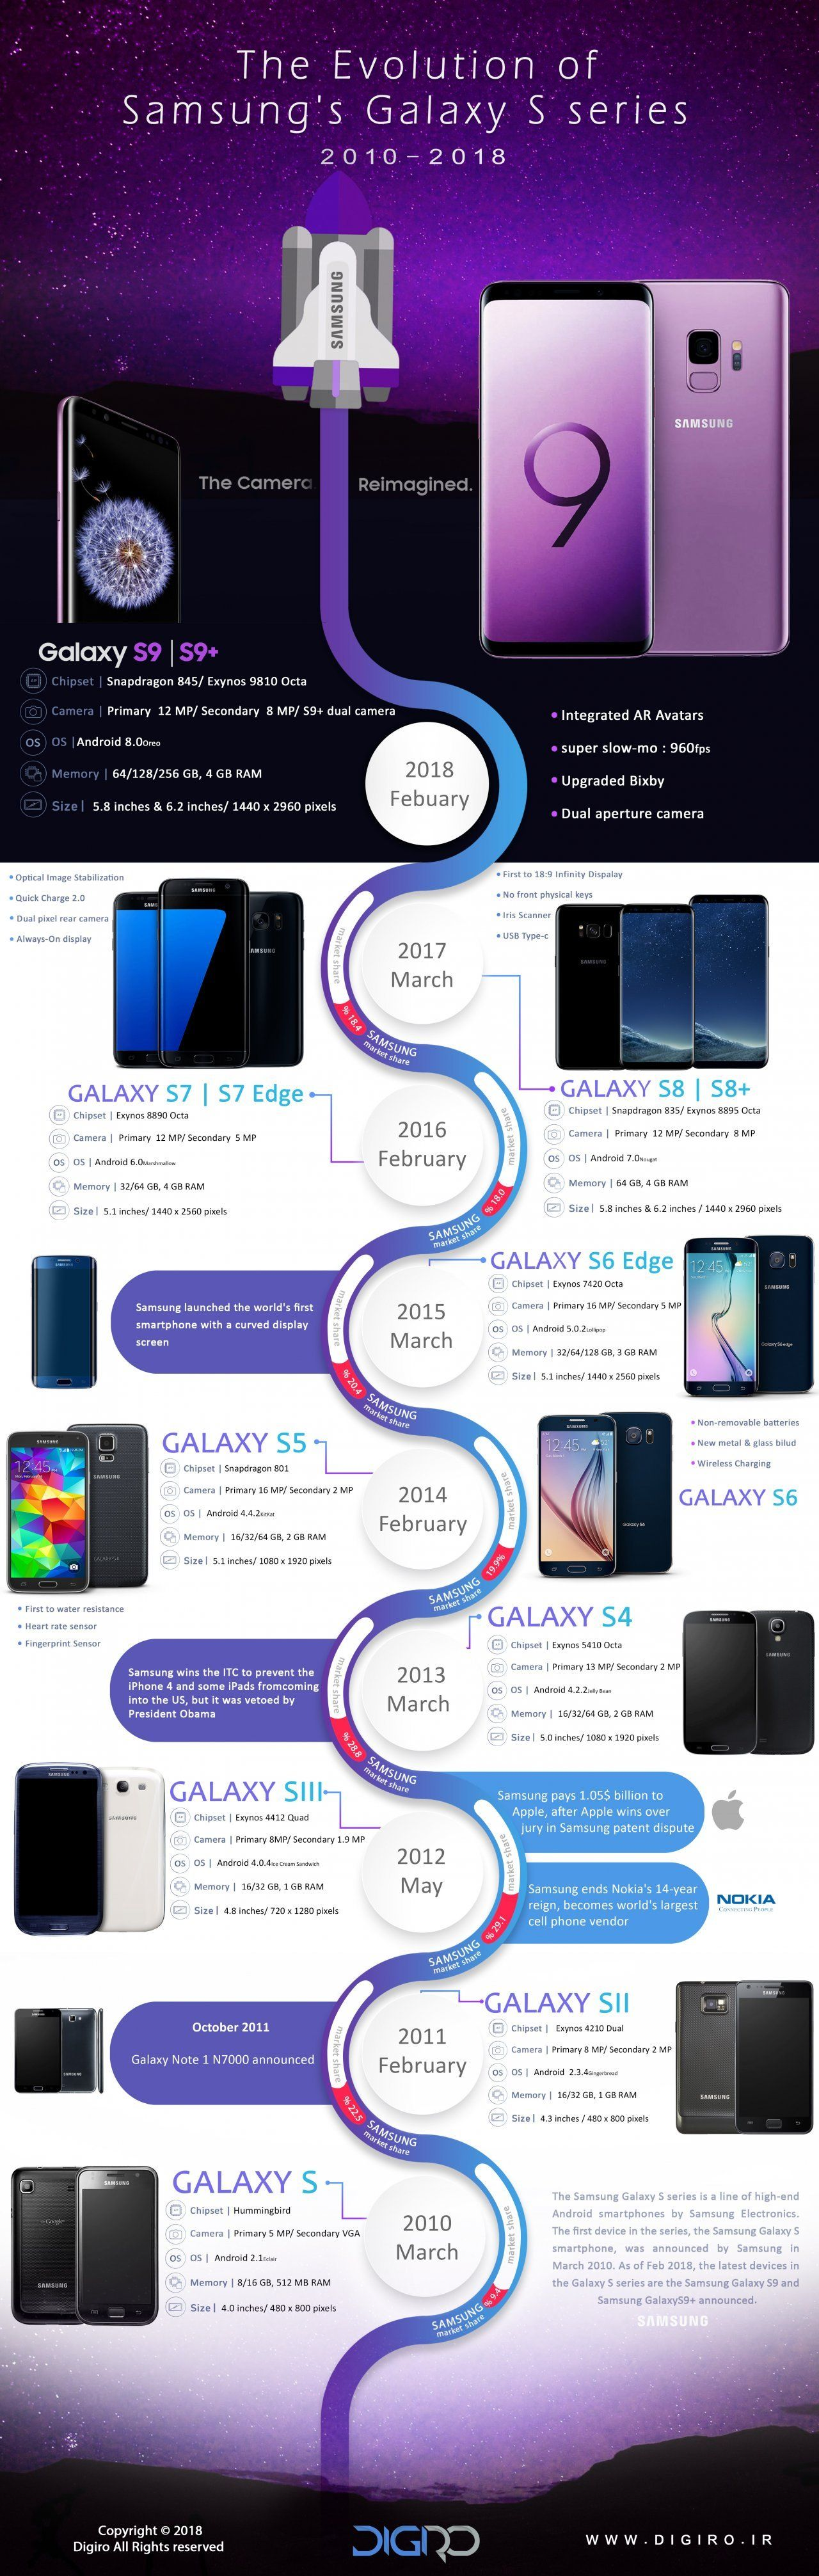 Infographic Evolution Of The Samsung Galaxy S Series From Galaxy S To S9 Samsung Galaxy S Series Samsung Galaxy S Samsung Galaxy